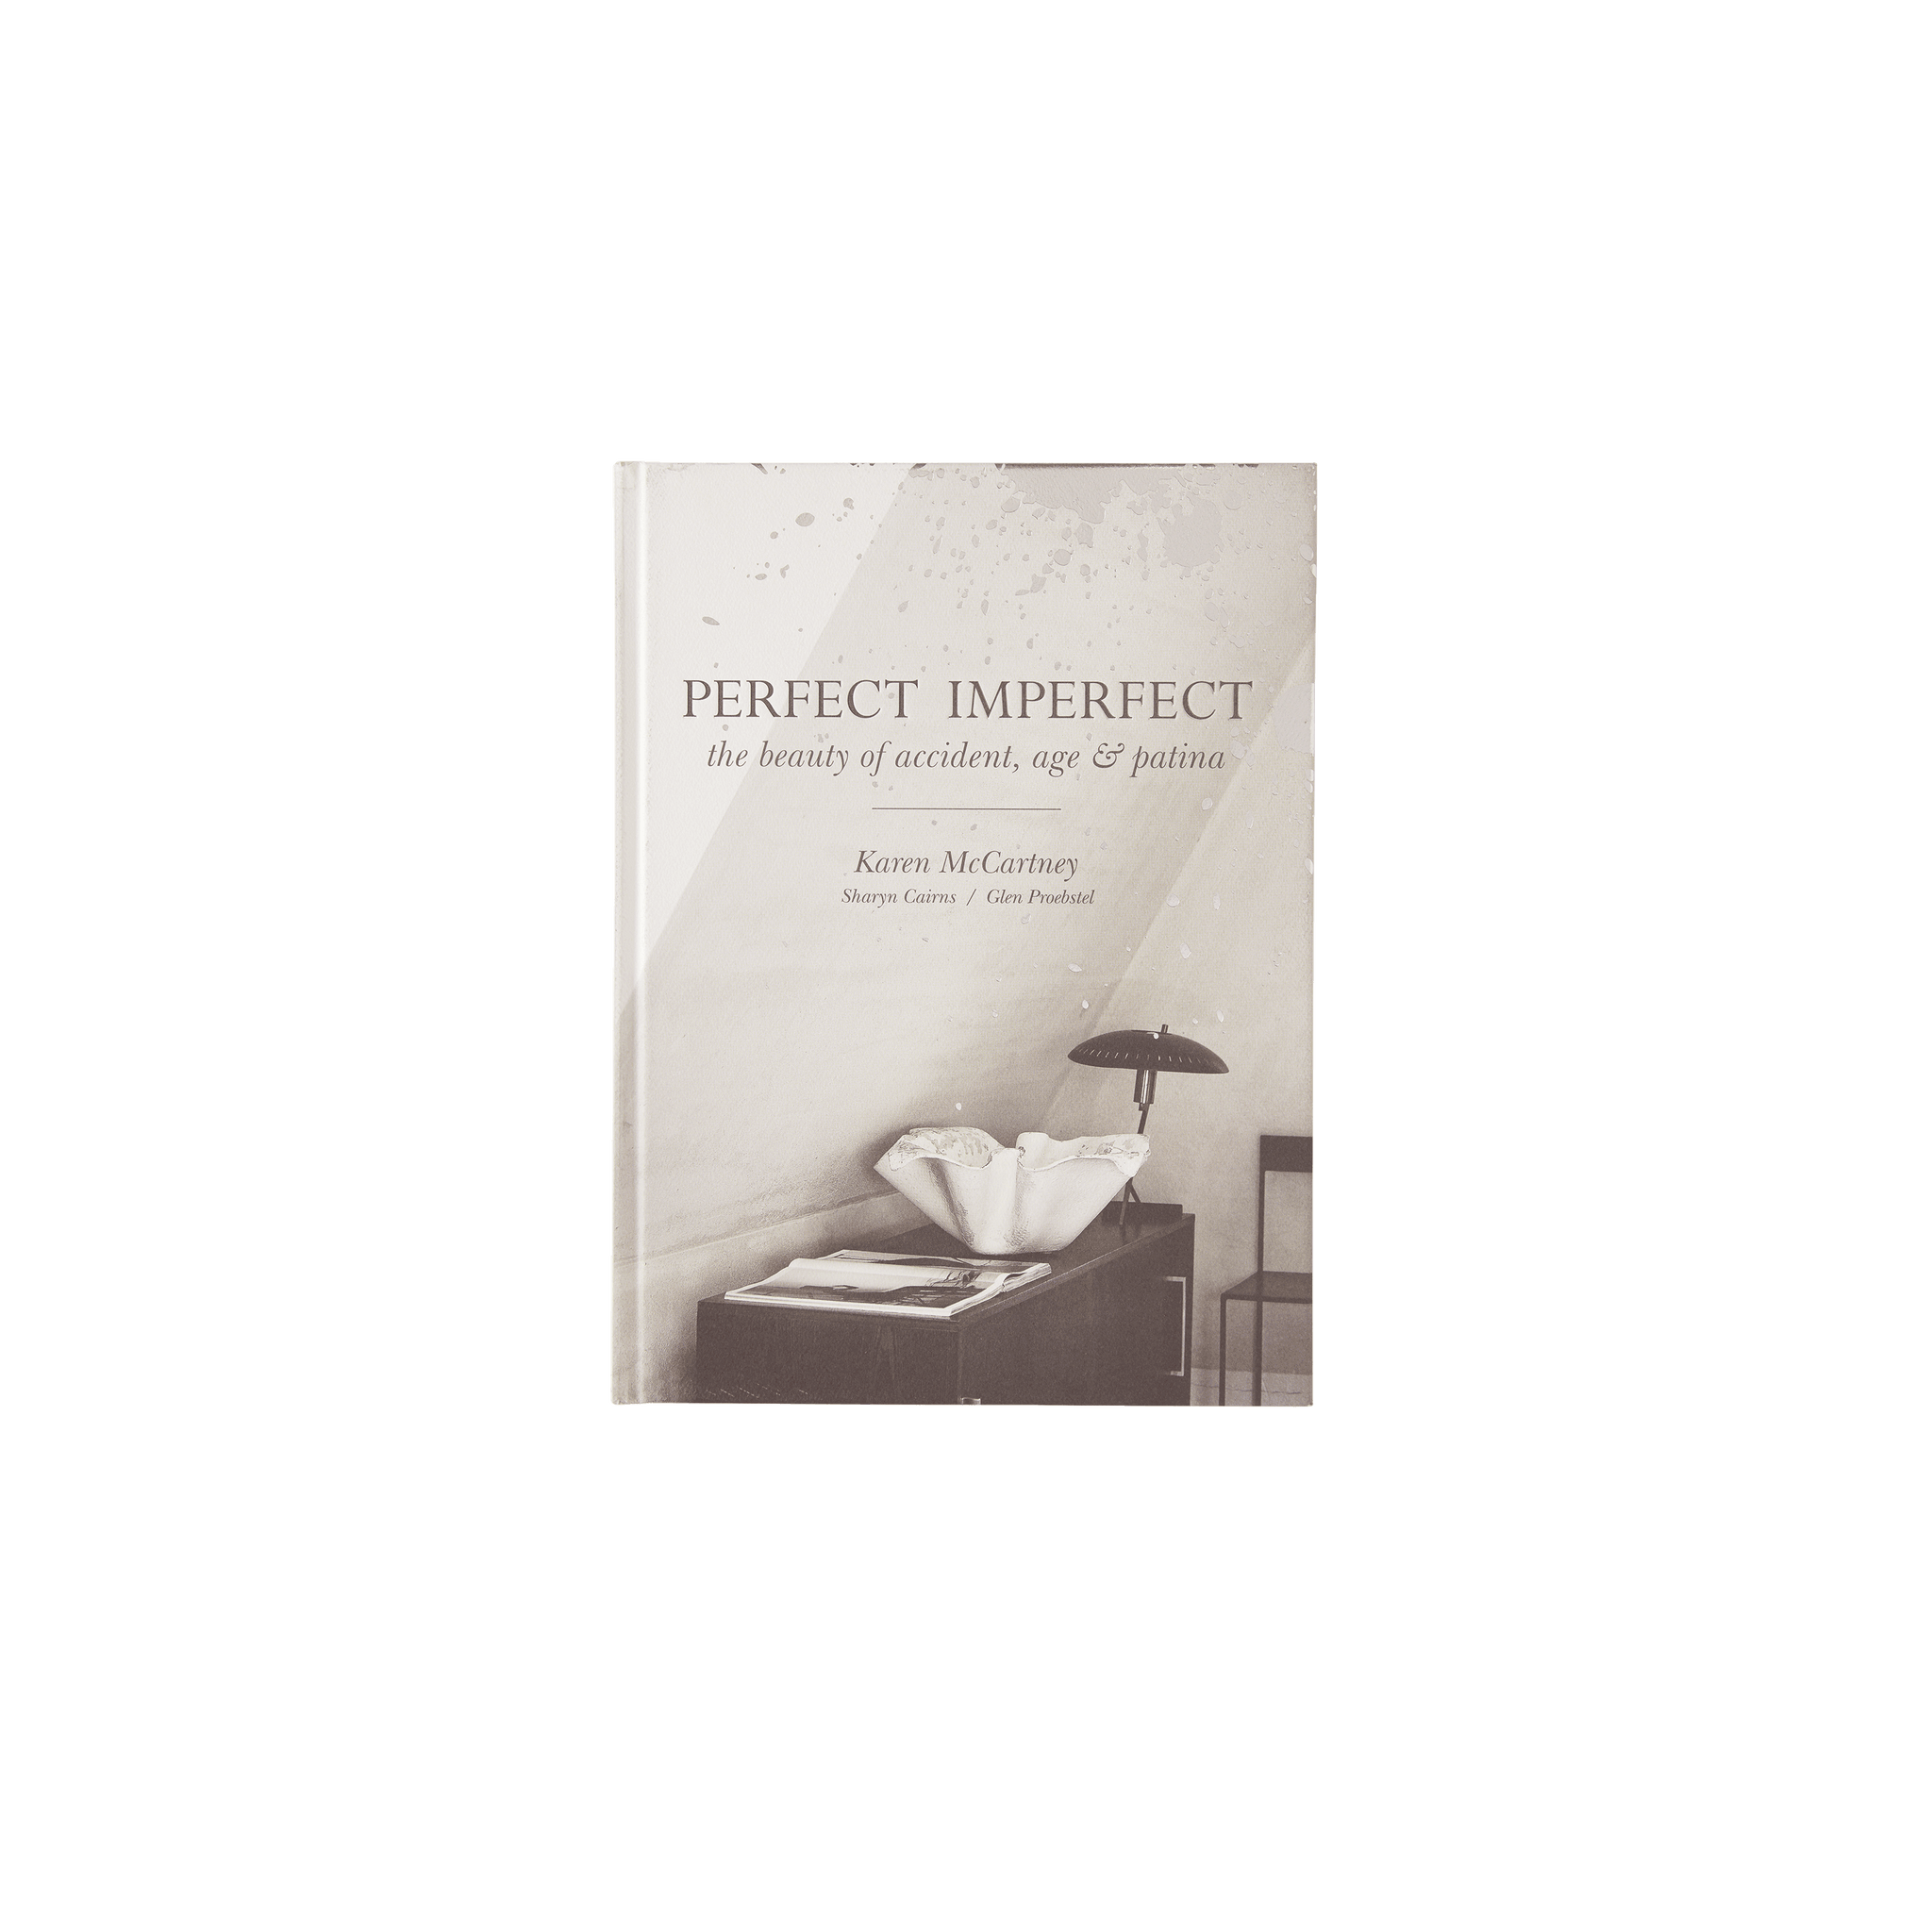 Perfect Imperfect - By Karen McCartney, Sharyn Cairns & Glen Proebstel